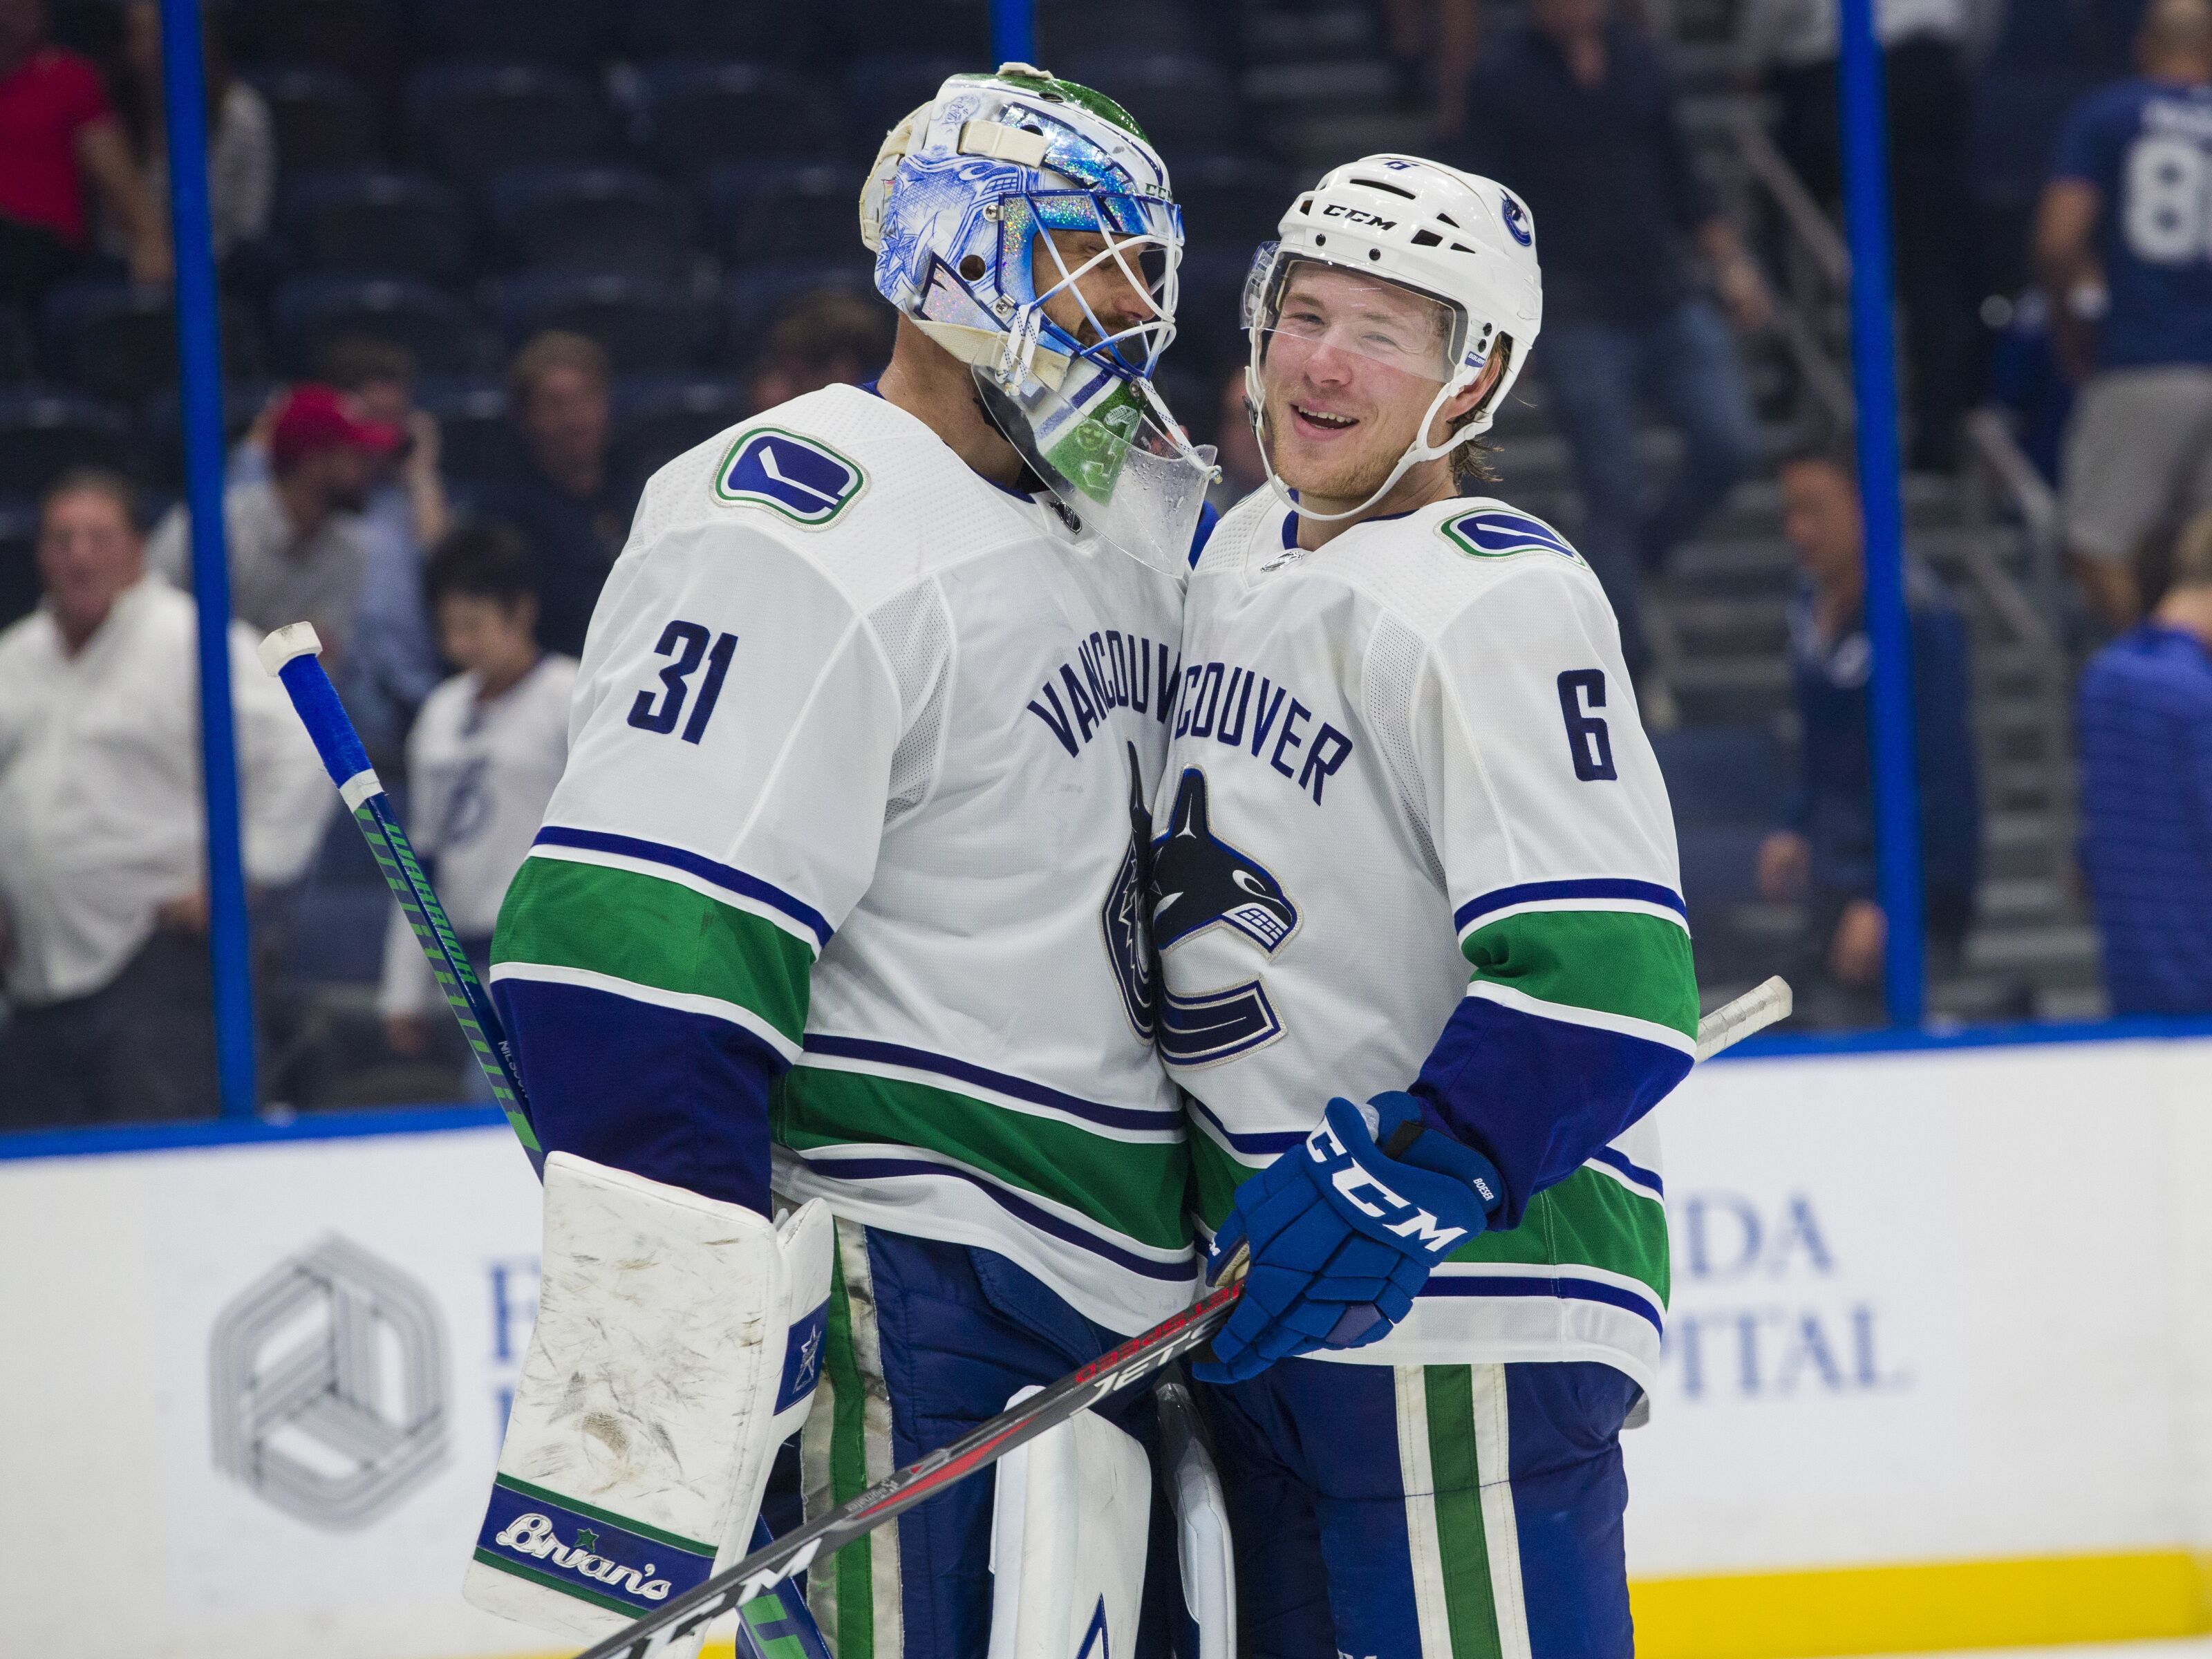 1dabbe941 Vancouver Canucks: Boeser scores, Canucks win, all is good